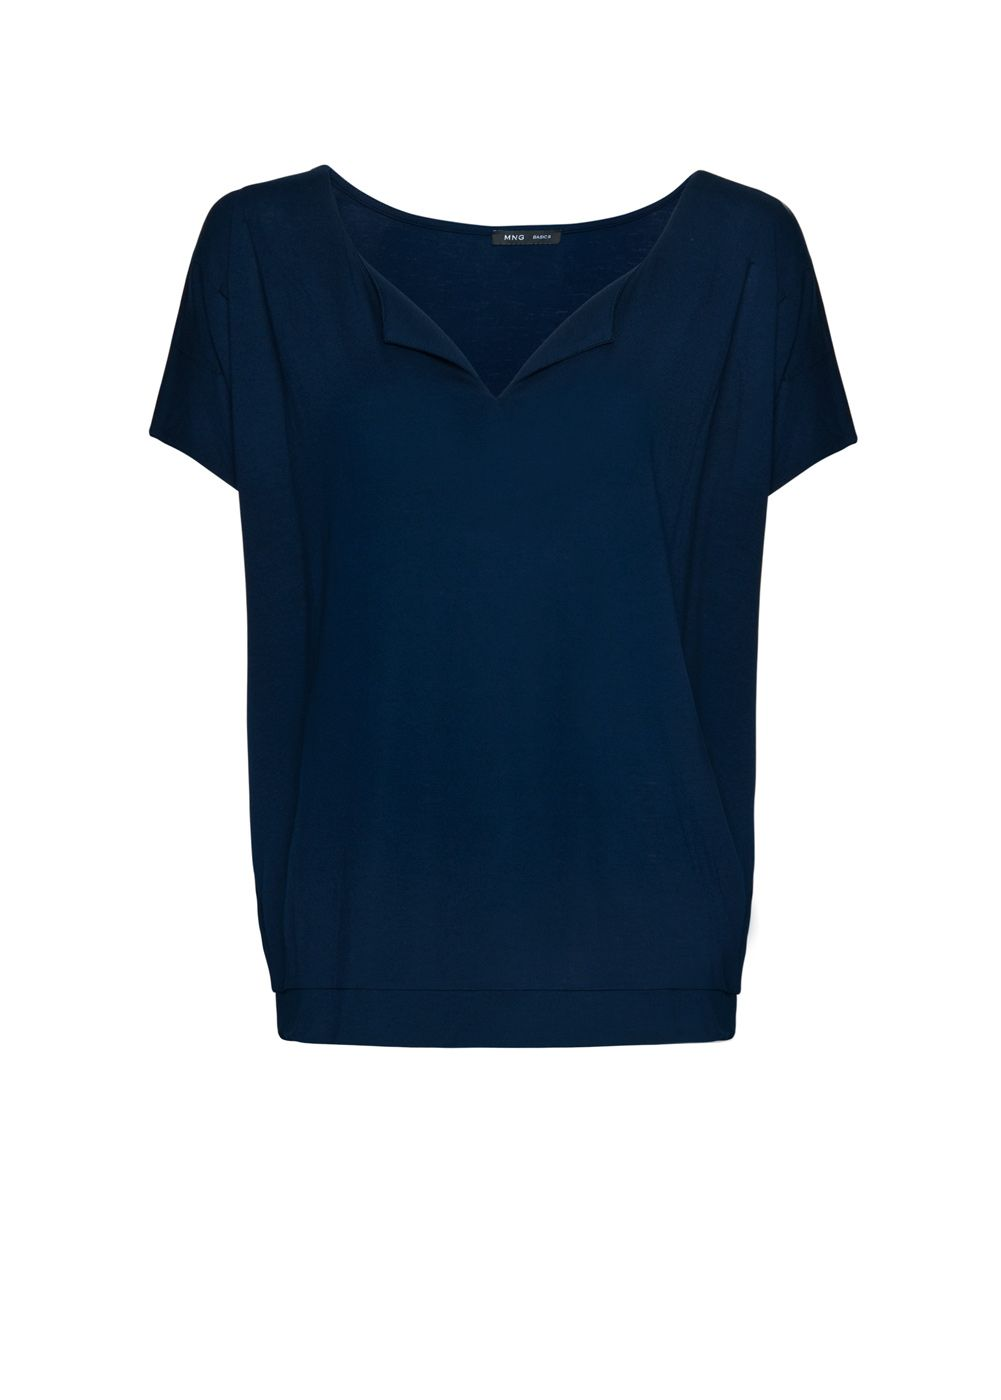 Mango Womens Mango V-neck t-shirt, Navy 164980132 product image